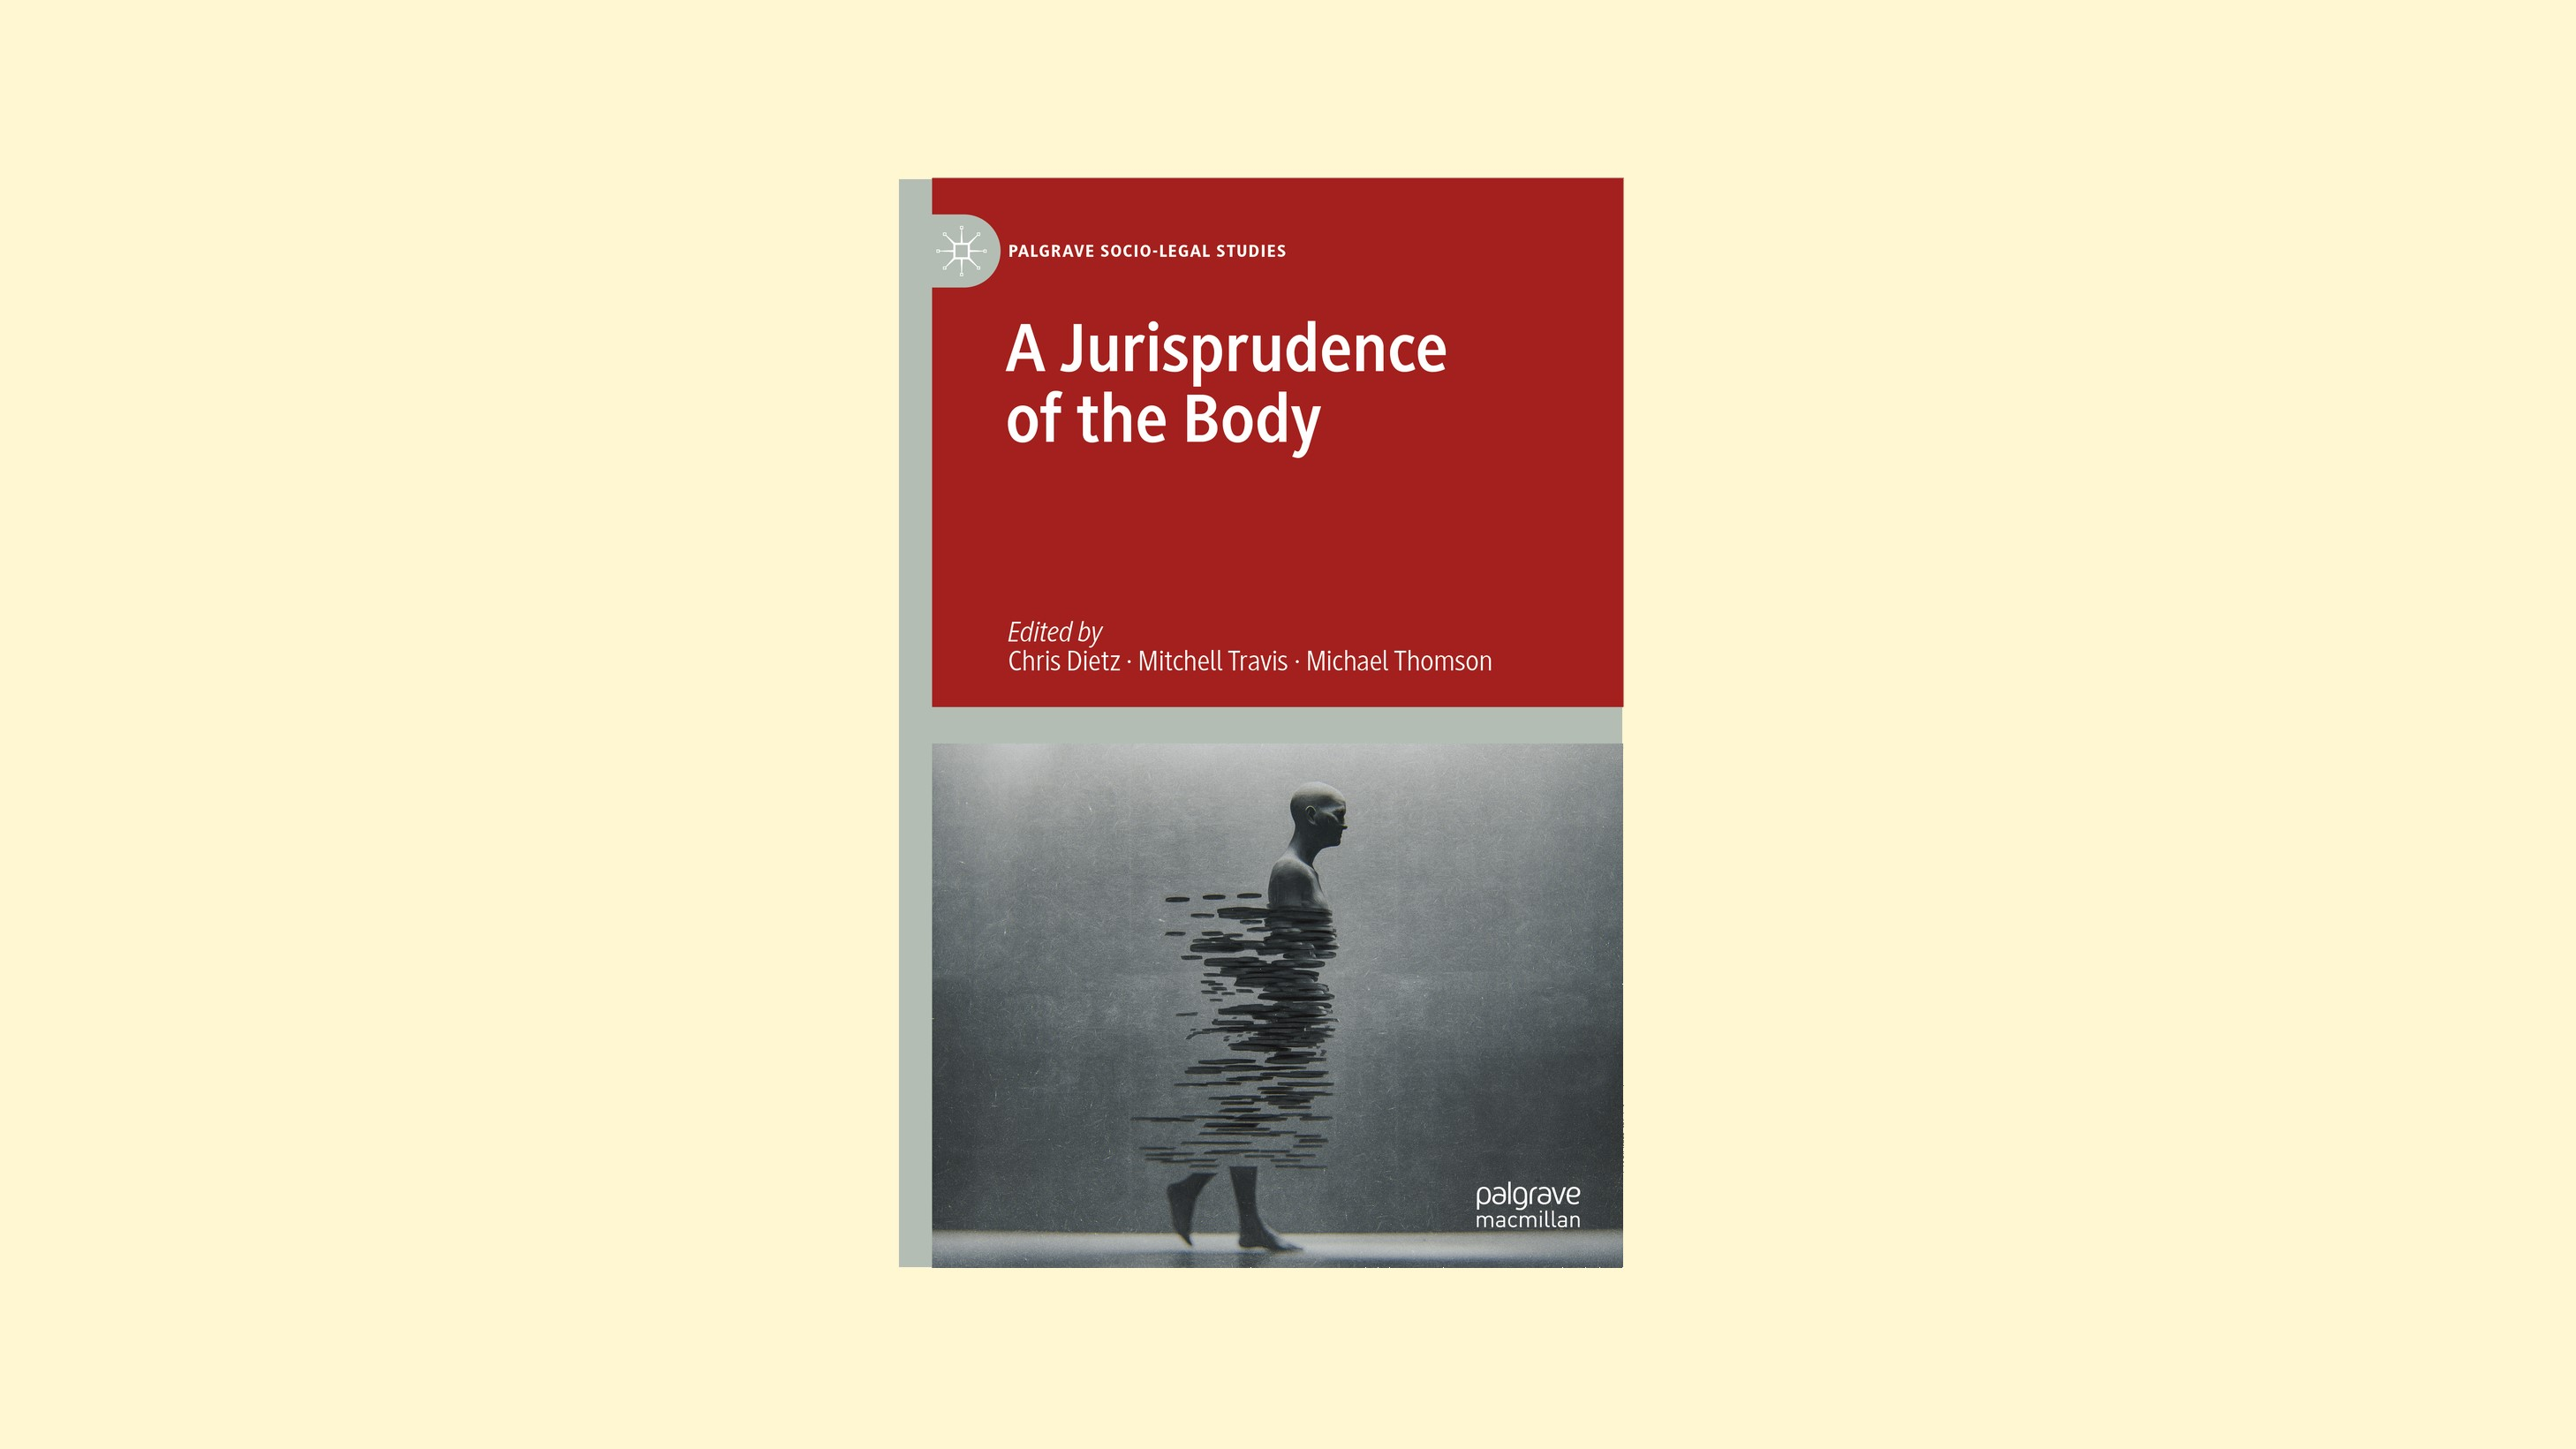 'A Jurisprudence of the Body' - a new collection edited by academics from the Centre for Law and Social Justice published